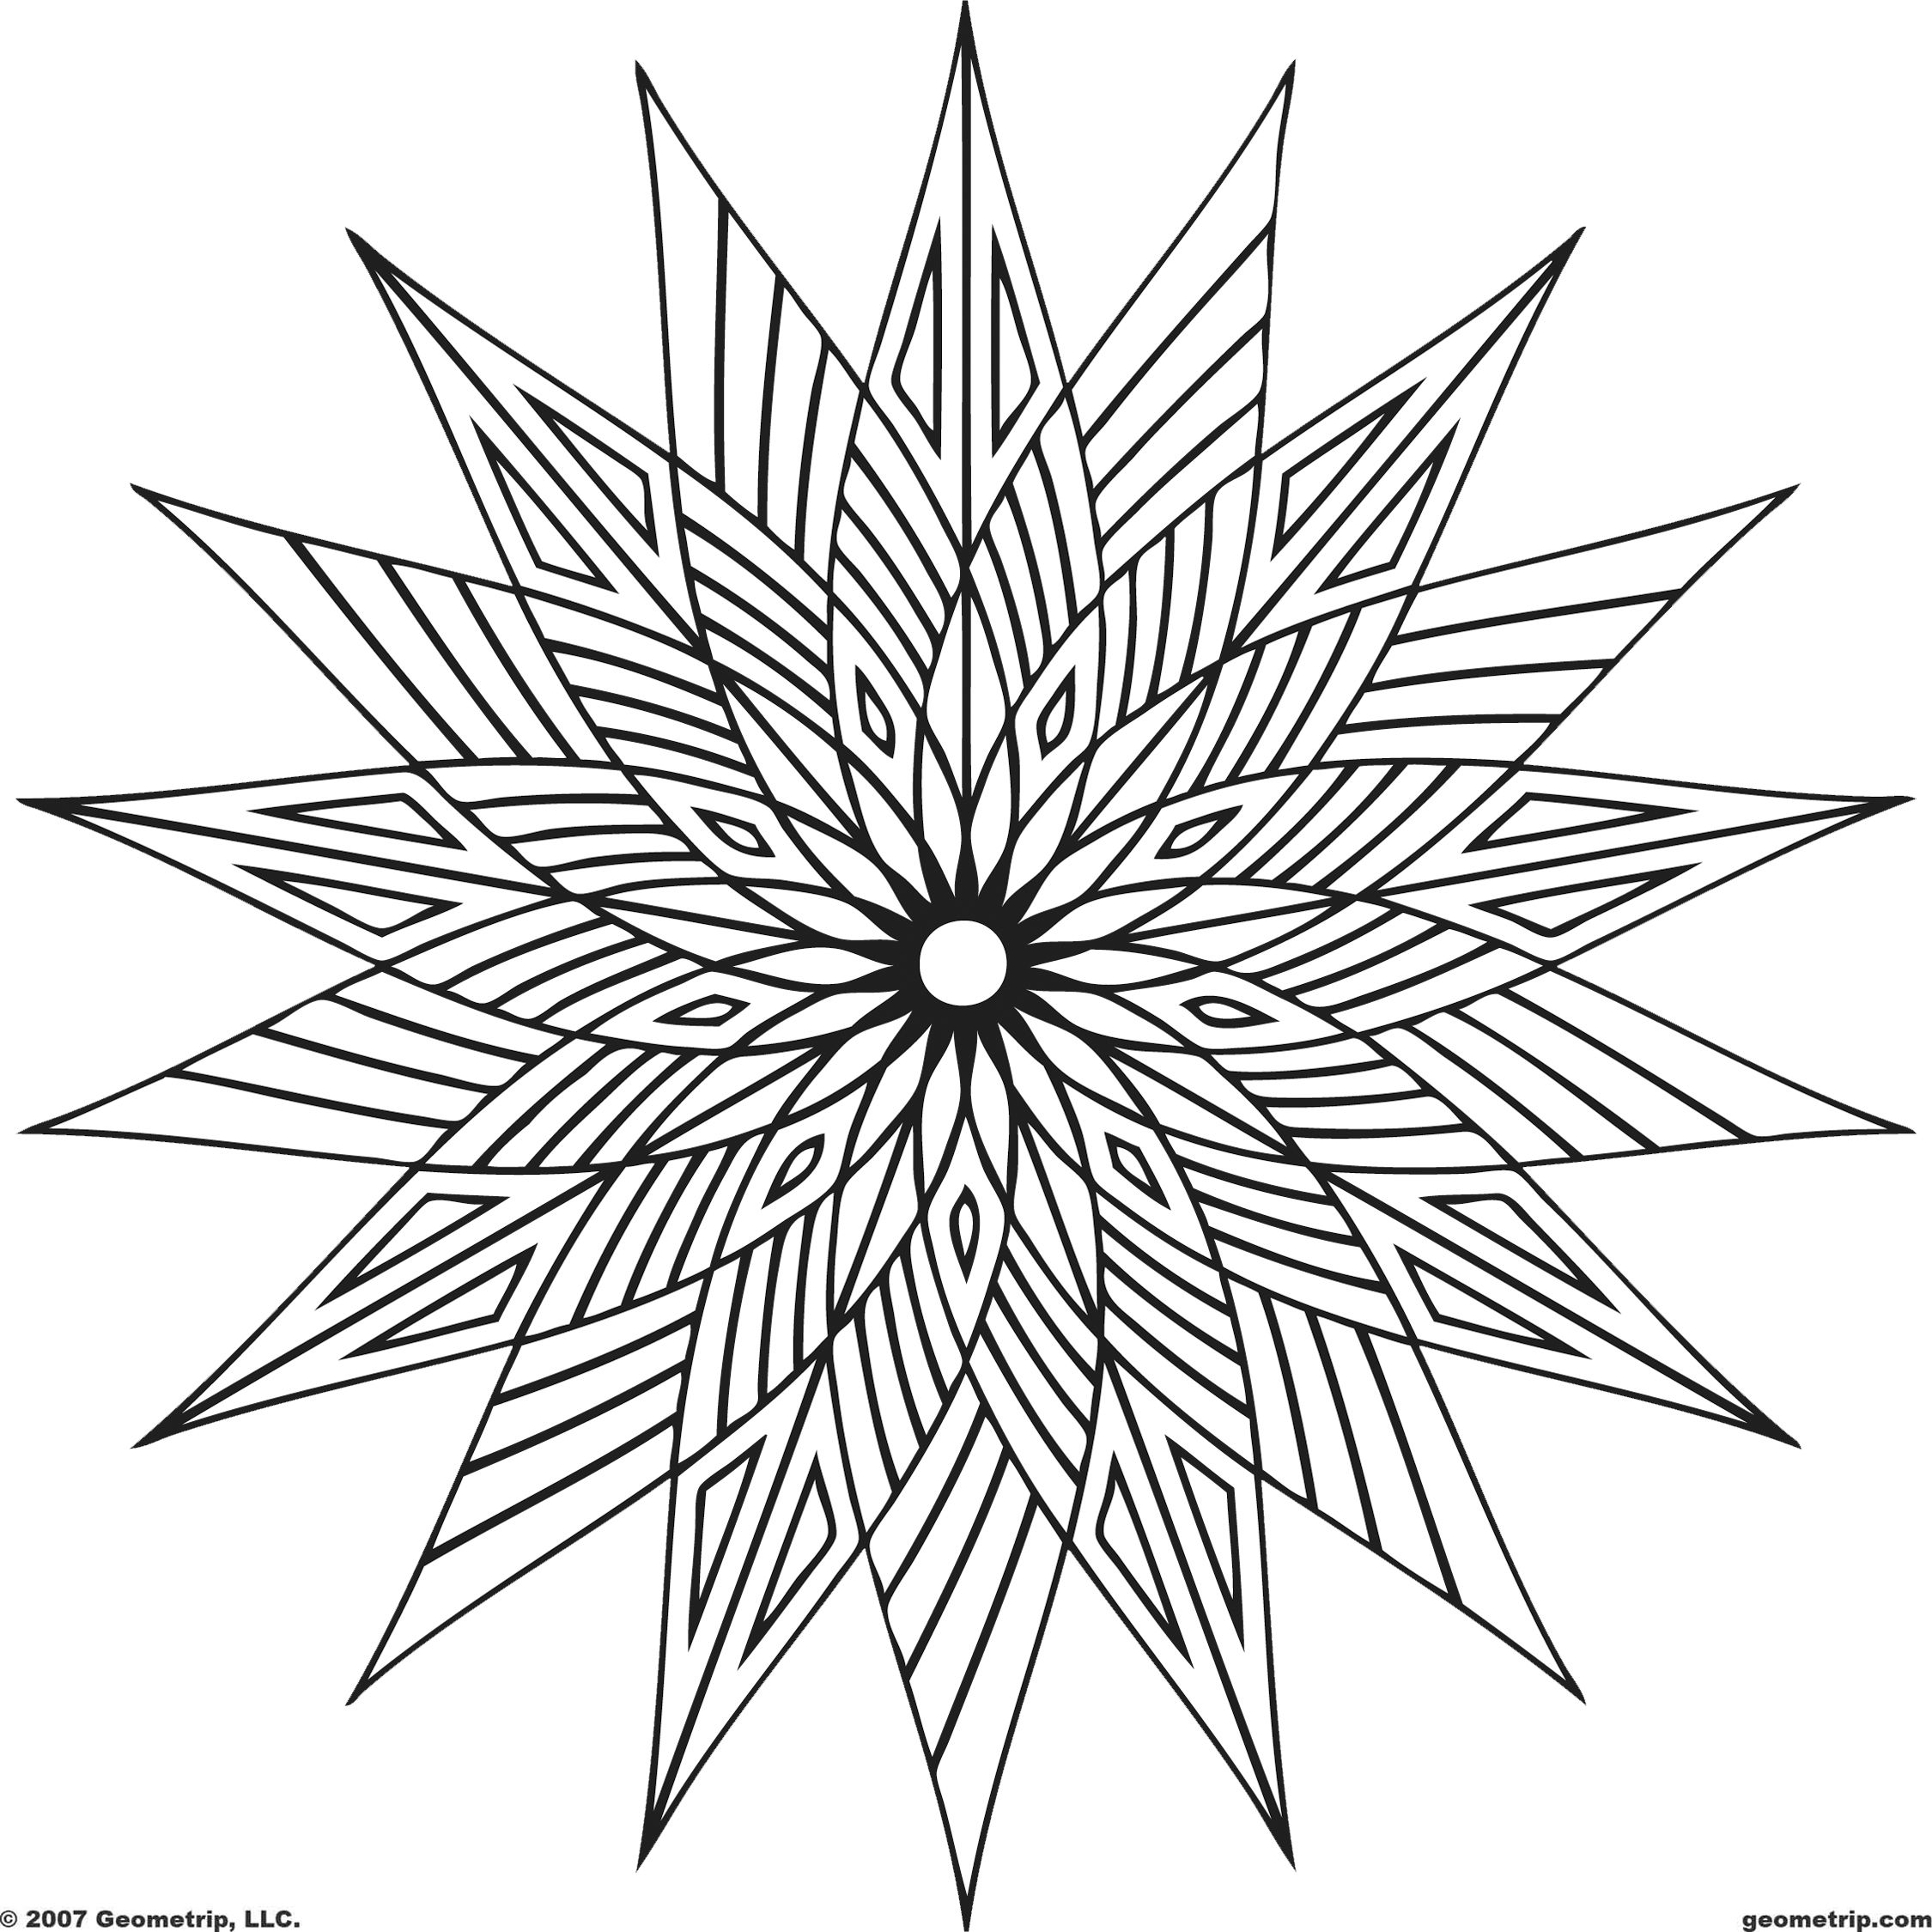 cool design coloring pages - Coloring Pages Designs Shapes